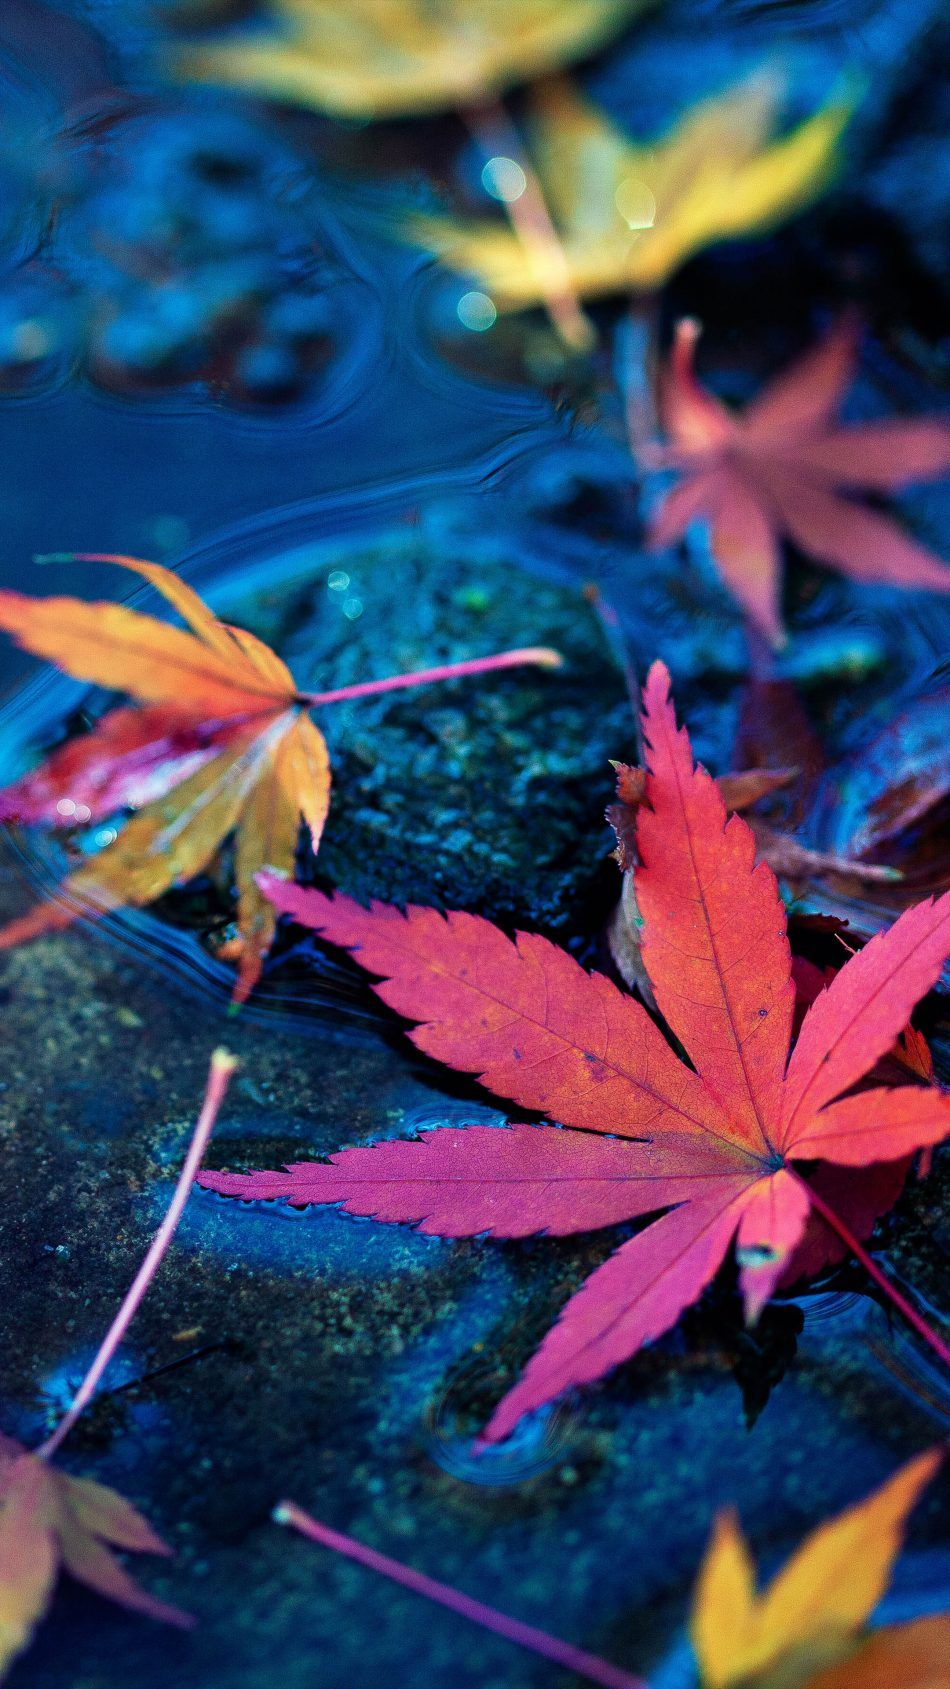 Maple Leaves Fall Autumn Water 4k Ultra Hd Mobile Wallpaper Fall Wallpaper Hd Flower Wallpaper Fall Pictures Nature